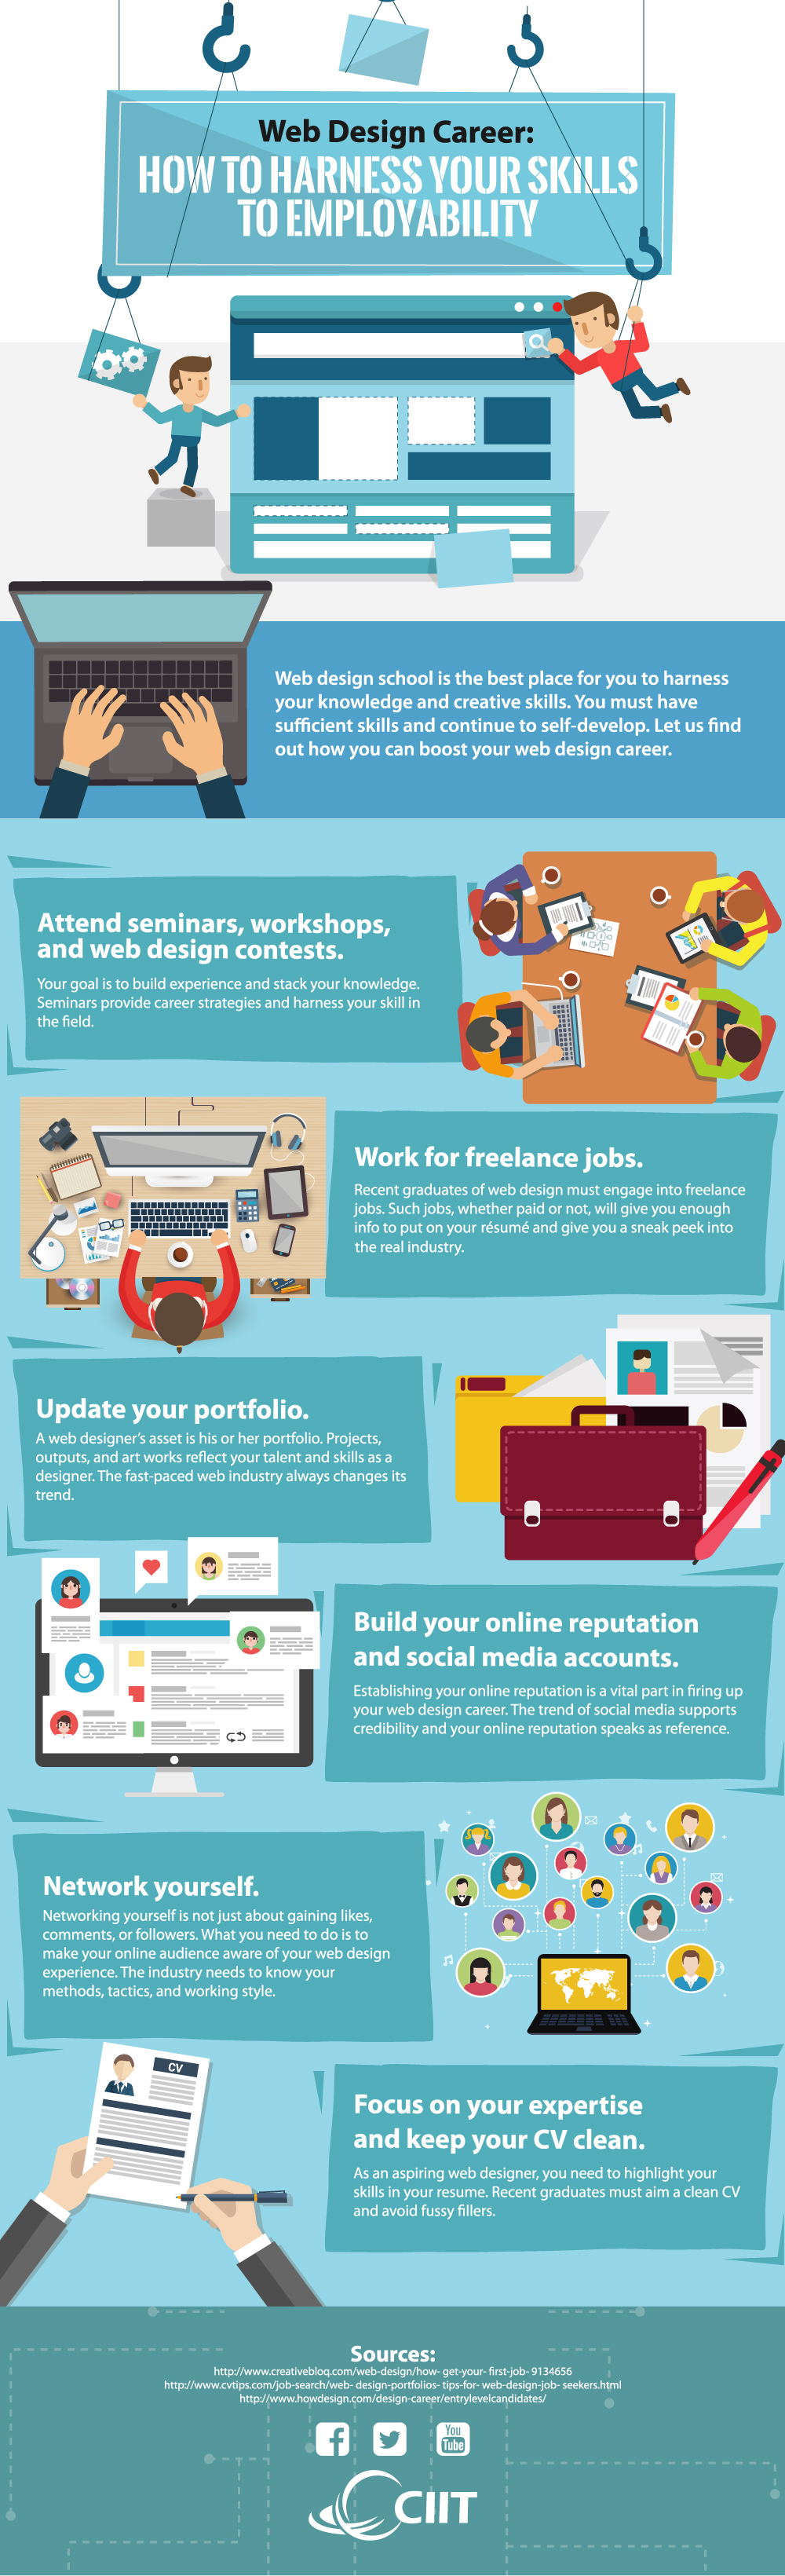 Web Design Career Graduates Guide To Jump Start Their Career